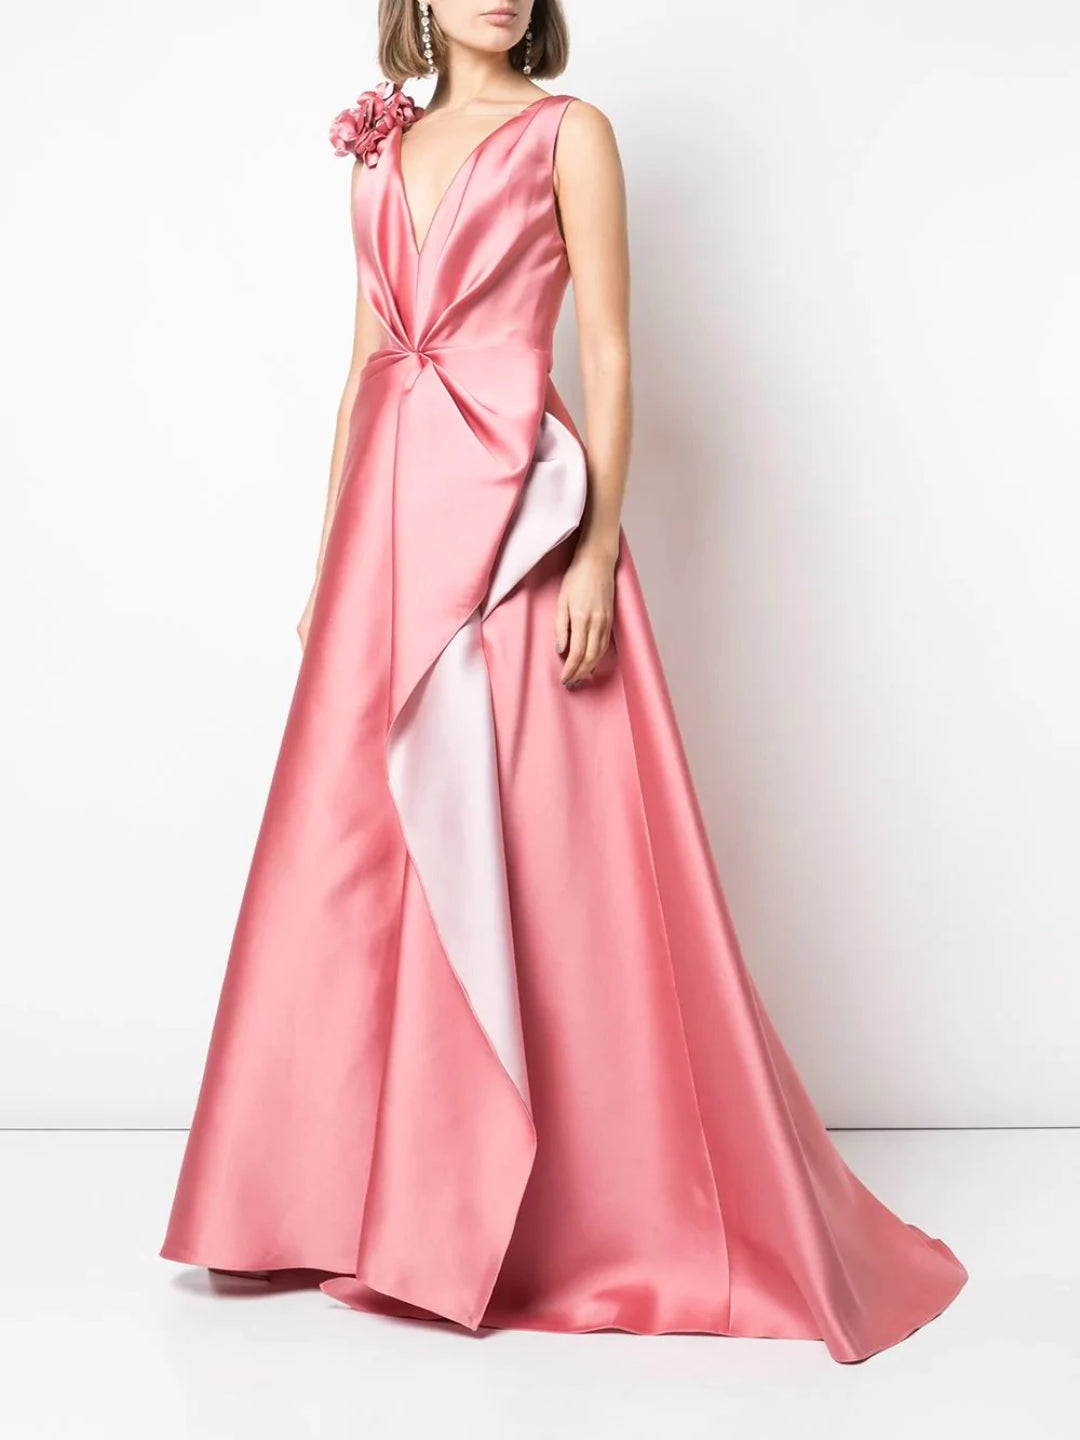 Plunging V-Neckline Gown With 3D Petals